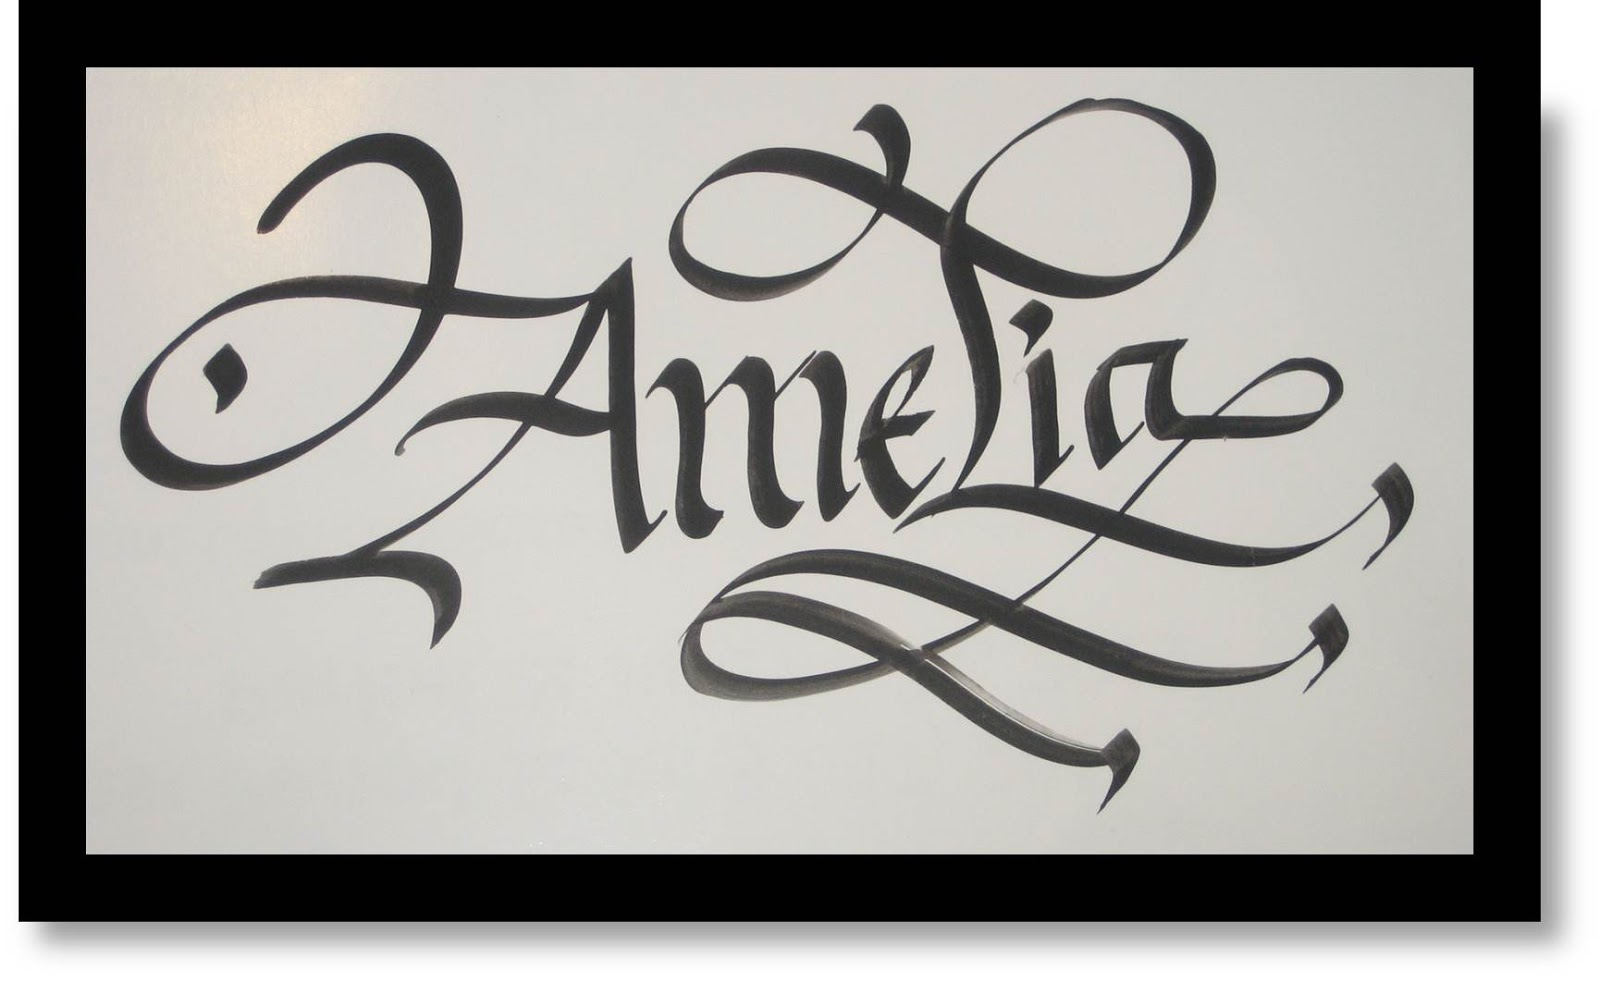 Calligraphy art french names amelia My name in calligraphy